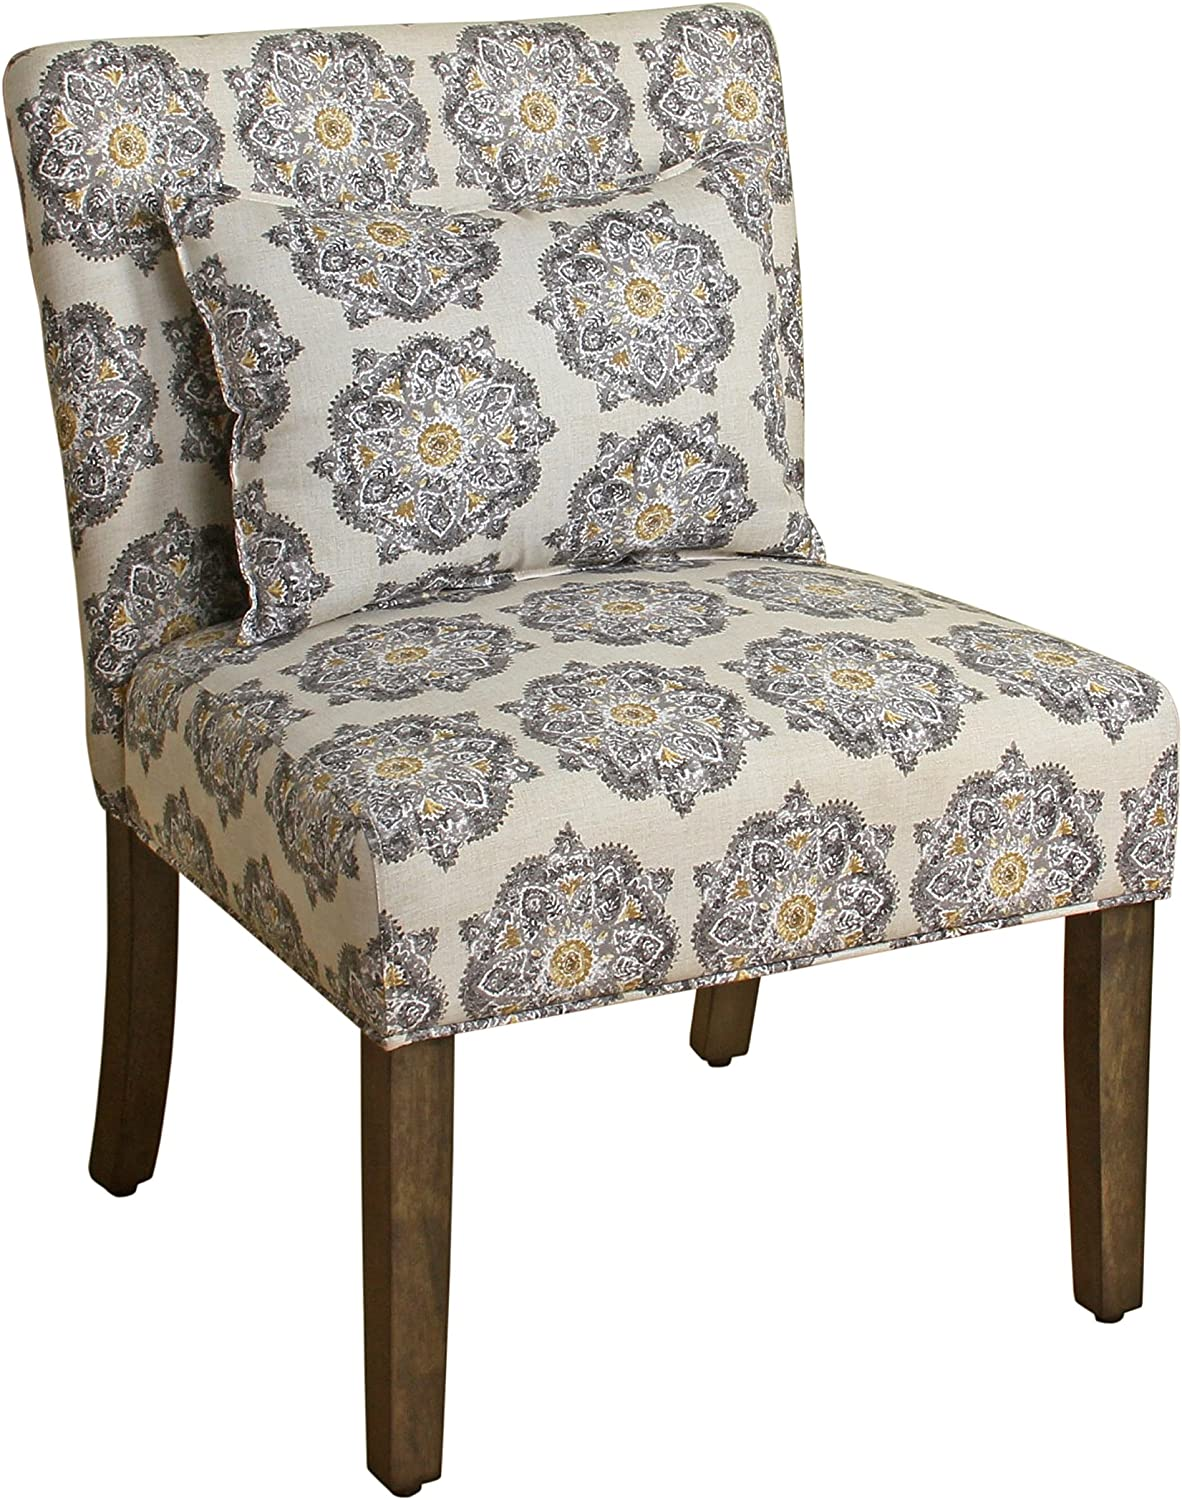 HomePop Parker Accent Chair with Pillow, Gray Medallion